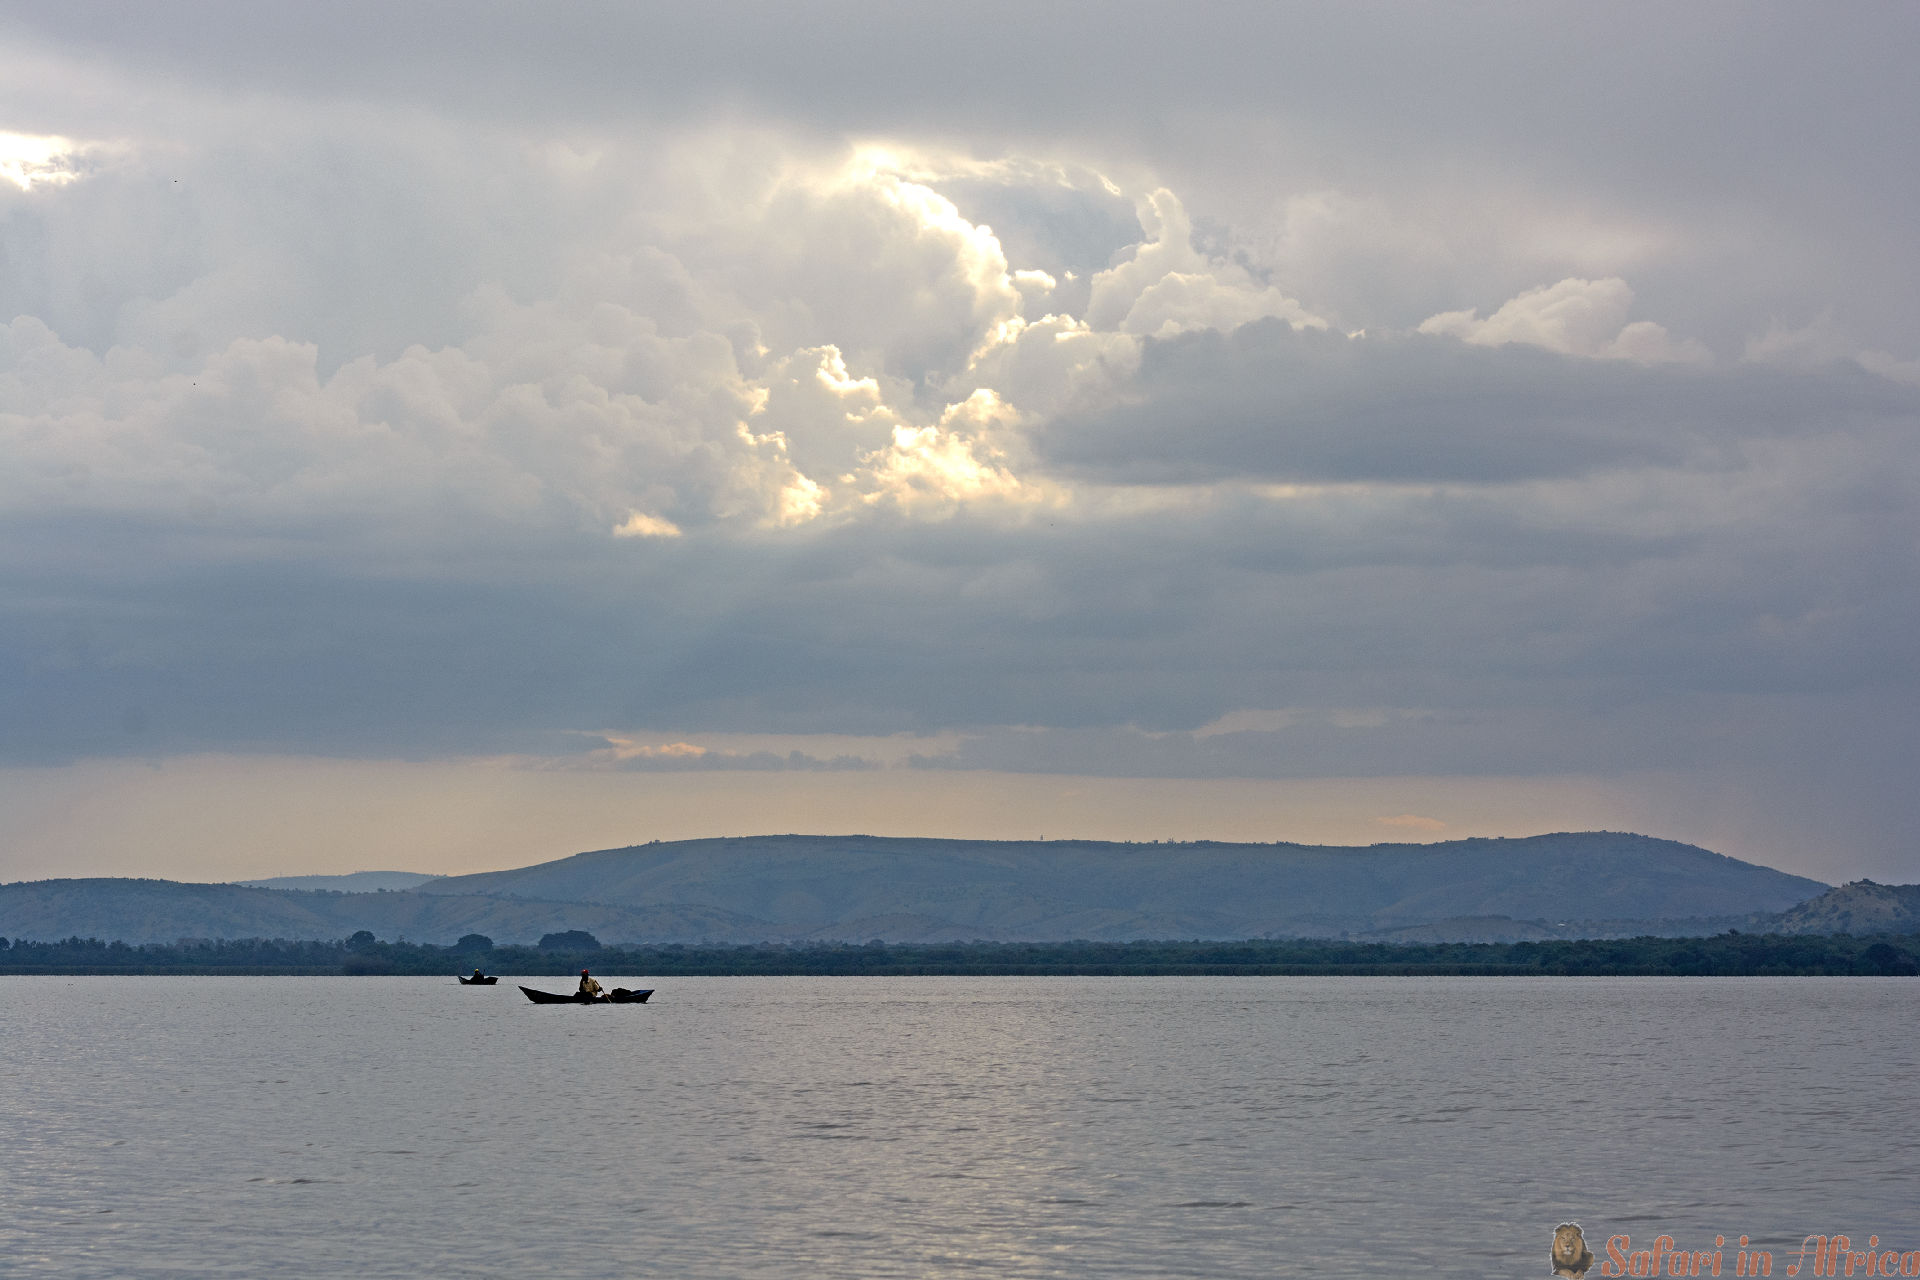 Fisherman on Lake Mburo in Uganda at Sunset